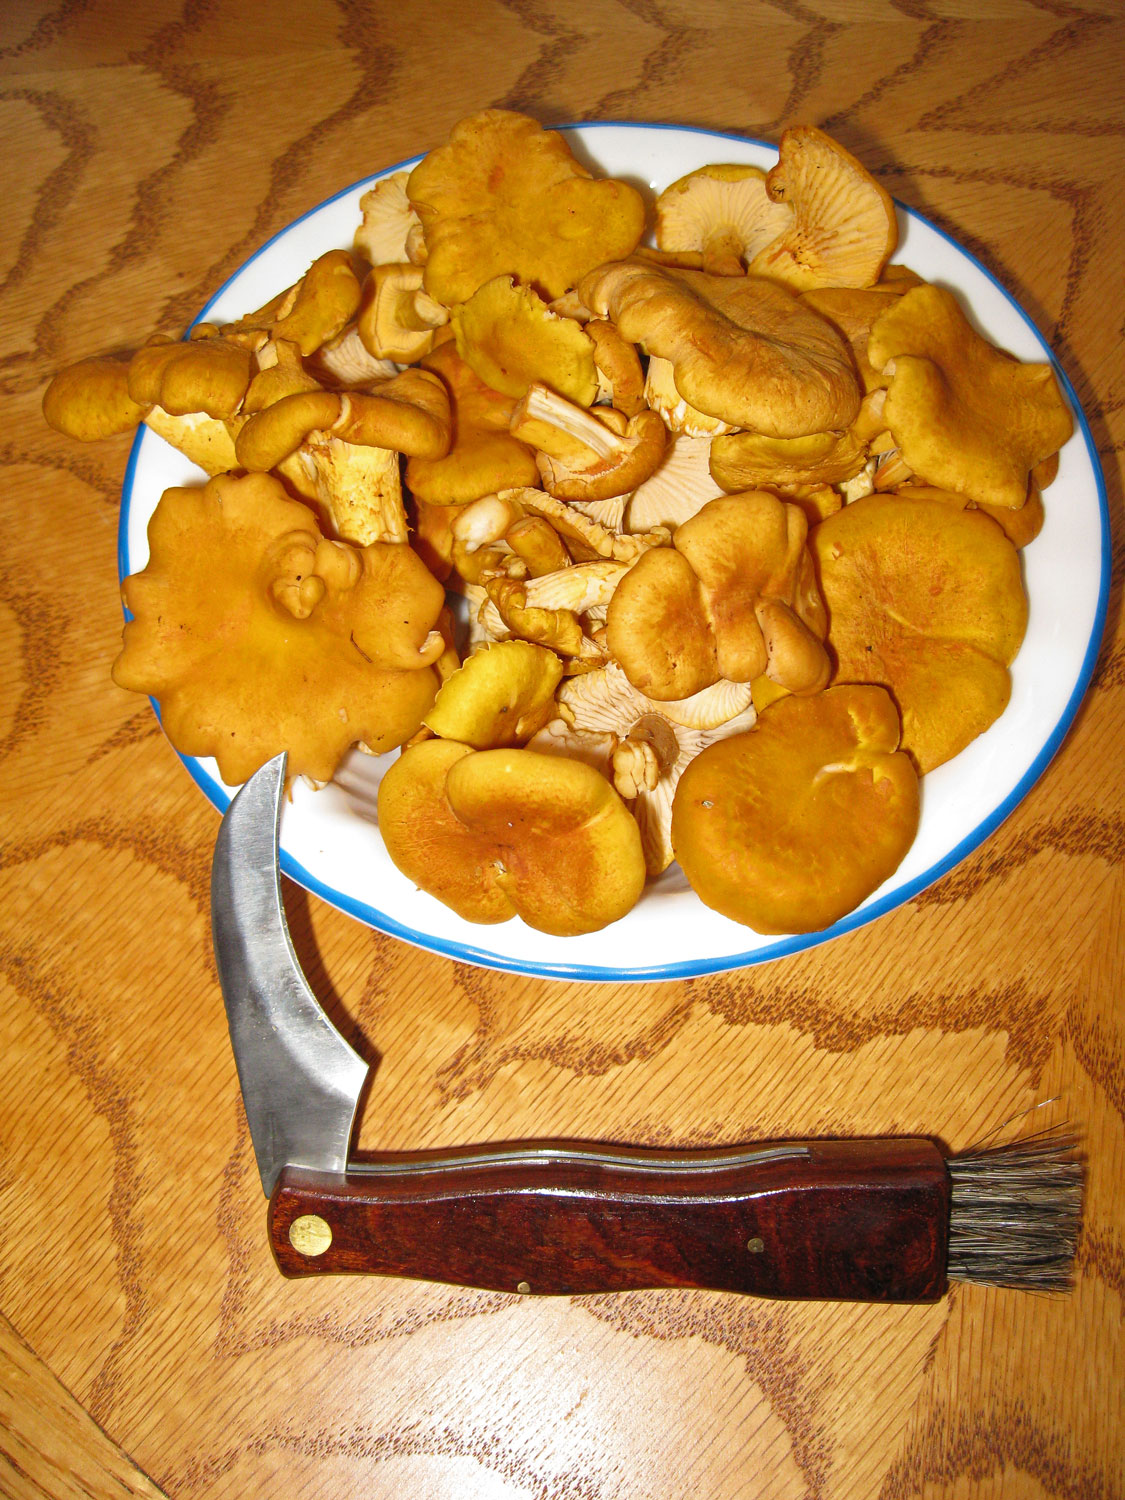 A mushroom knife with a brush is helpful when harvesting golden chanterelles or any mushrooms. These small, young chanterelles were harvested early in the season.